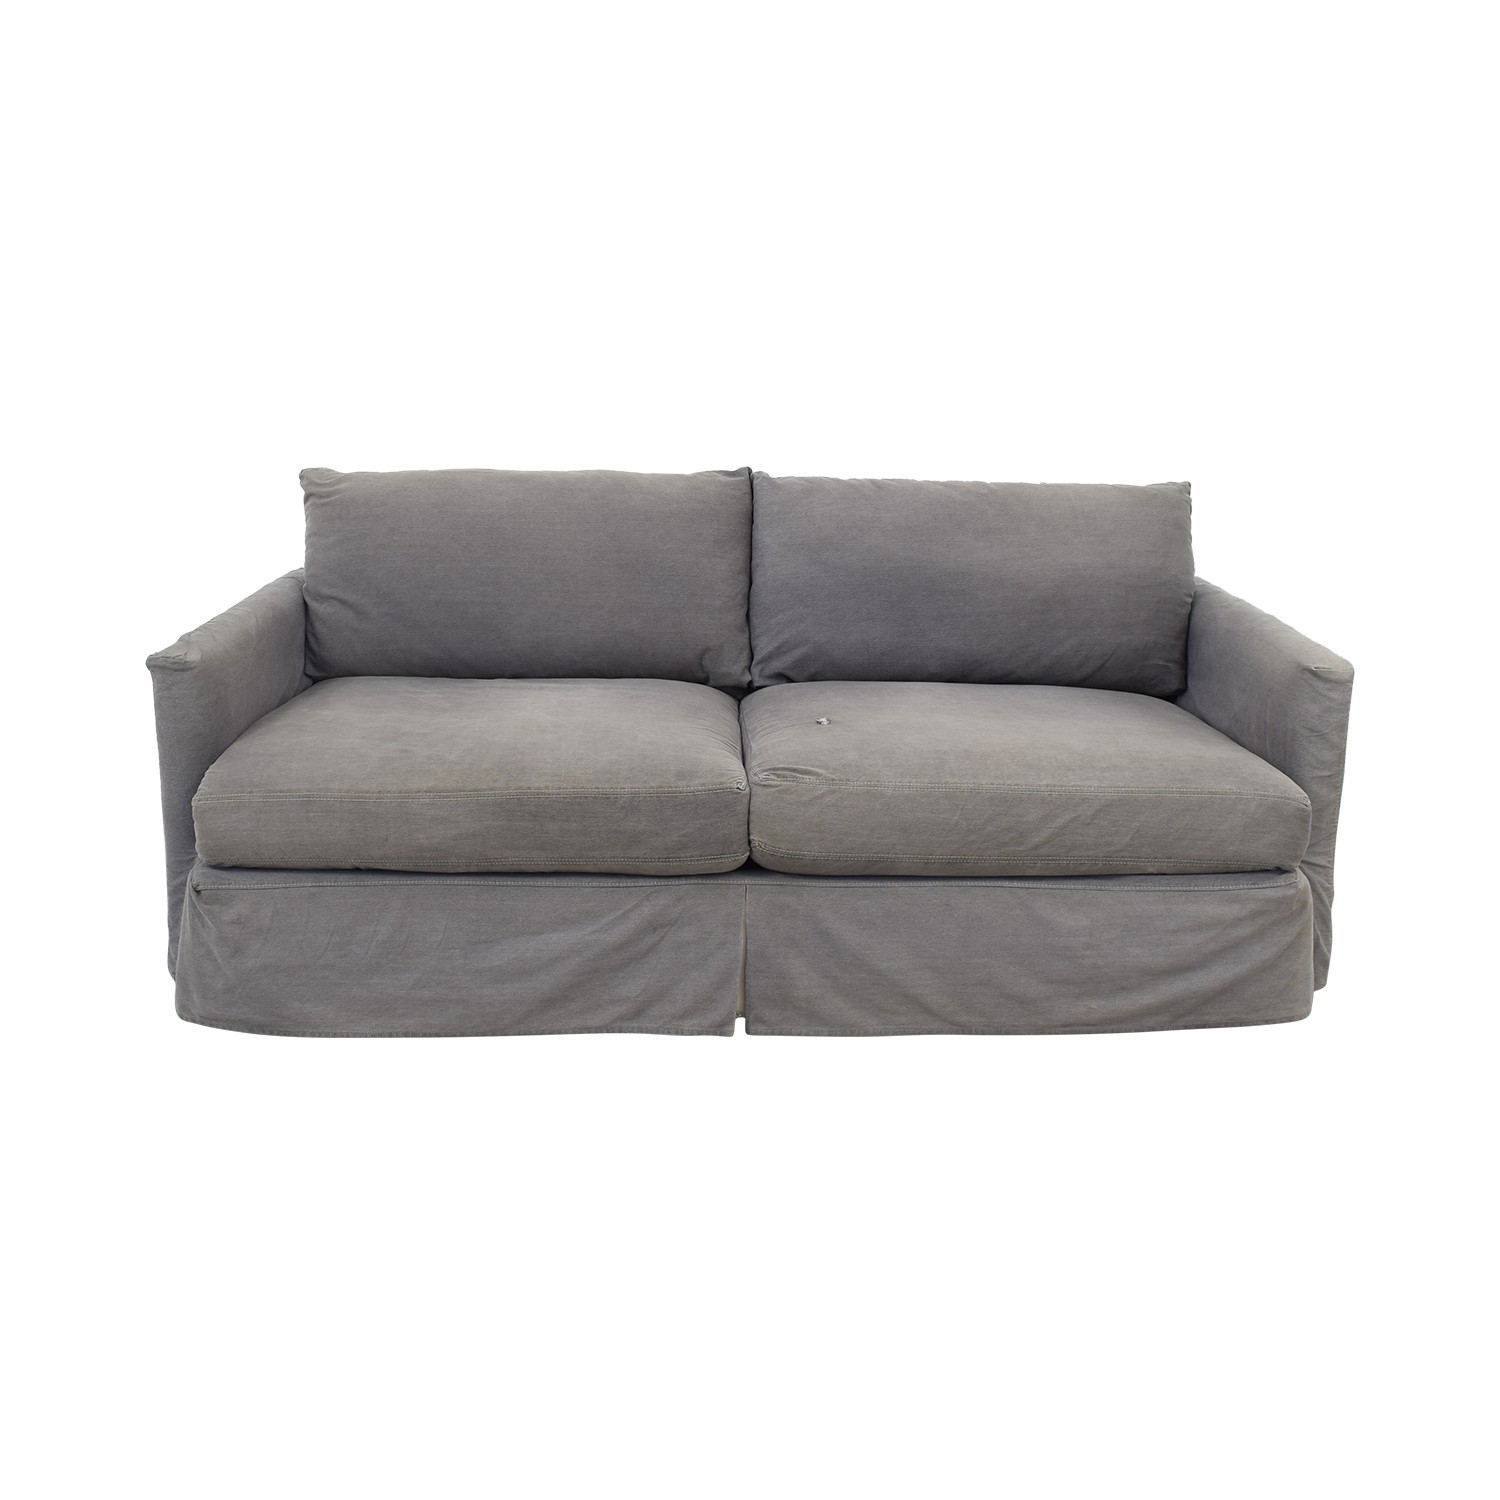 Crate & Barrel Crate & Barrel Lounge II Petite Slipcovered Sofa discount